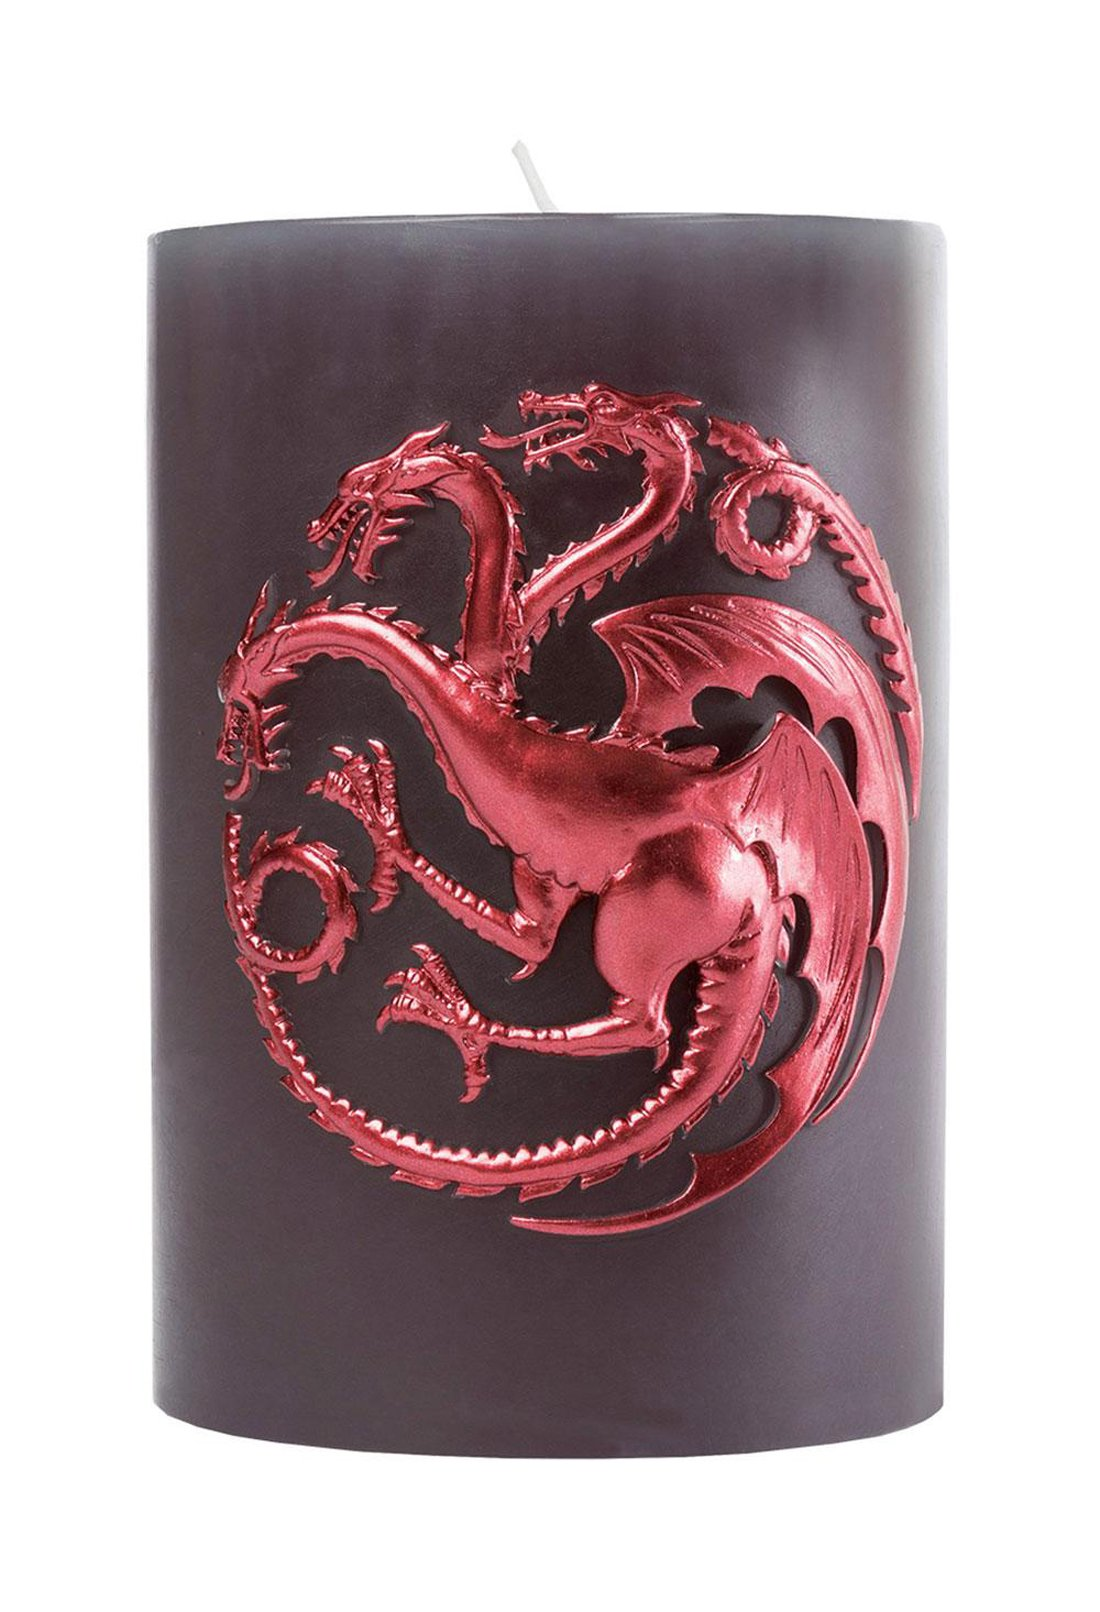 Game of Thrones Candle - Large House Targaryen Insignia Sculpted Pillar Candle - Reusable With 80 Hour Burn Time - Perfect Gift for the GoT Fan - Unscented - 6''